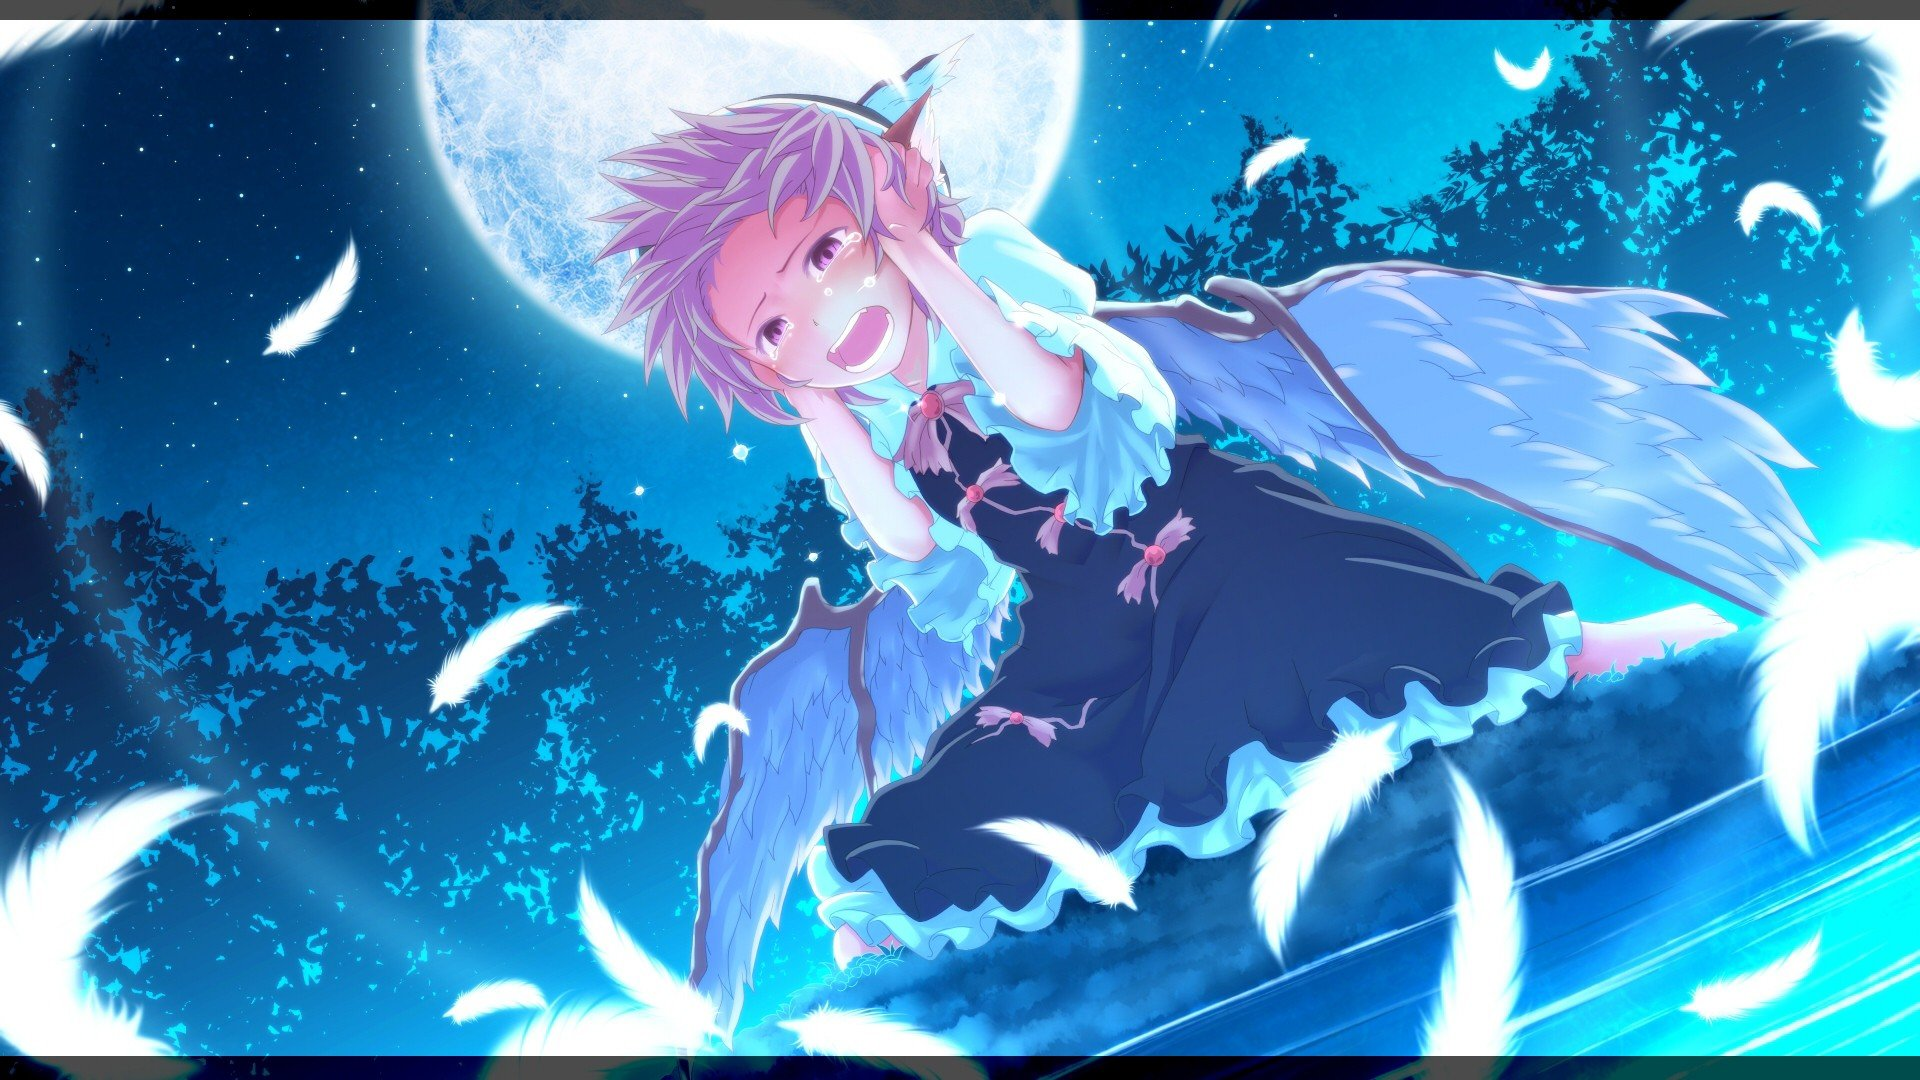 Pink Feathers Falling Wallpaper Water Video Games Touhou Wings Dress Night Stars Moon